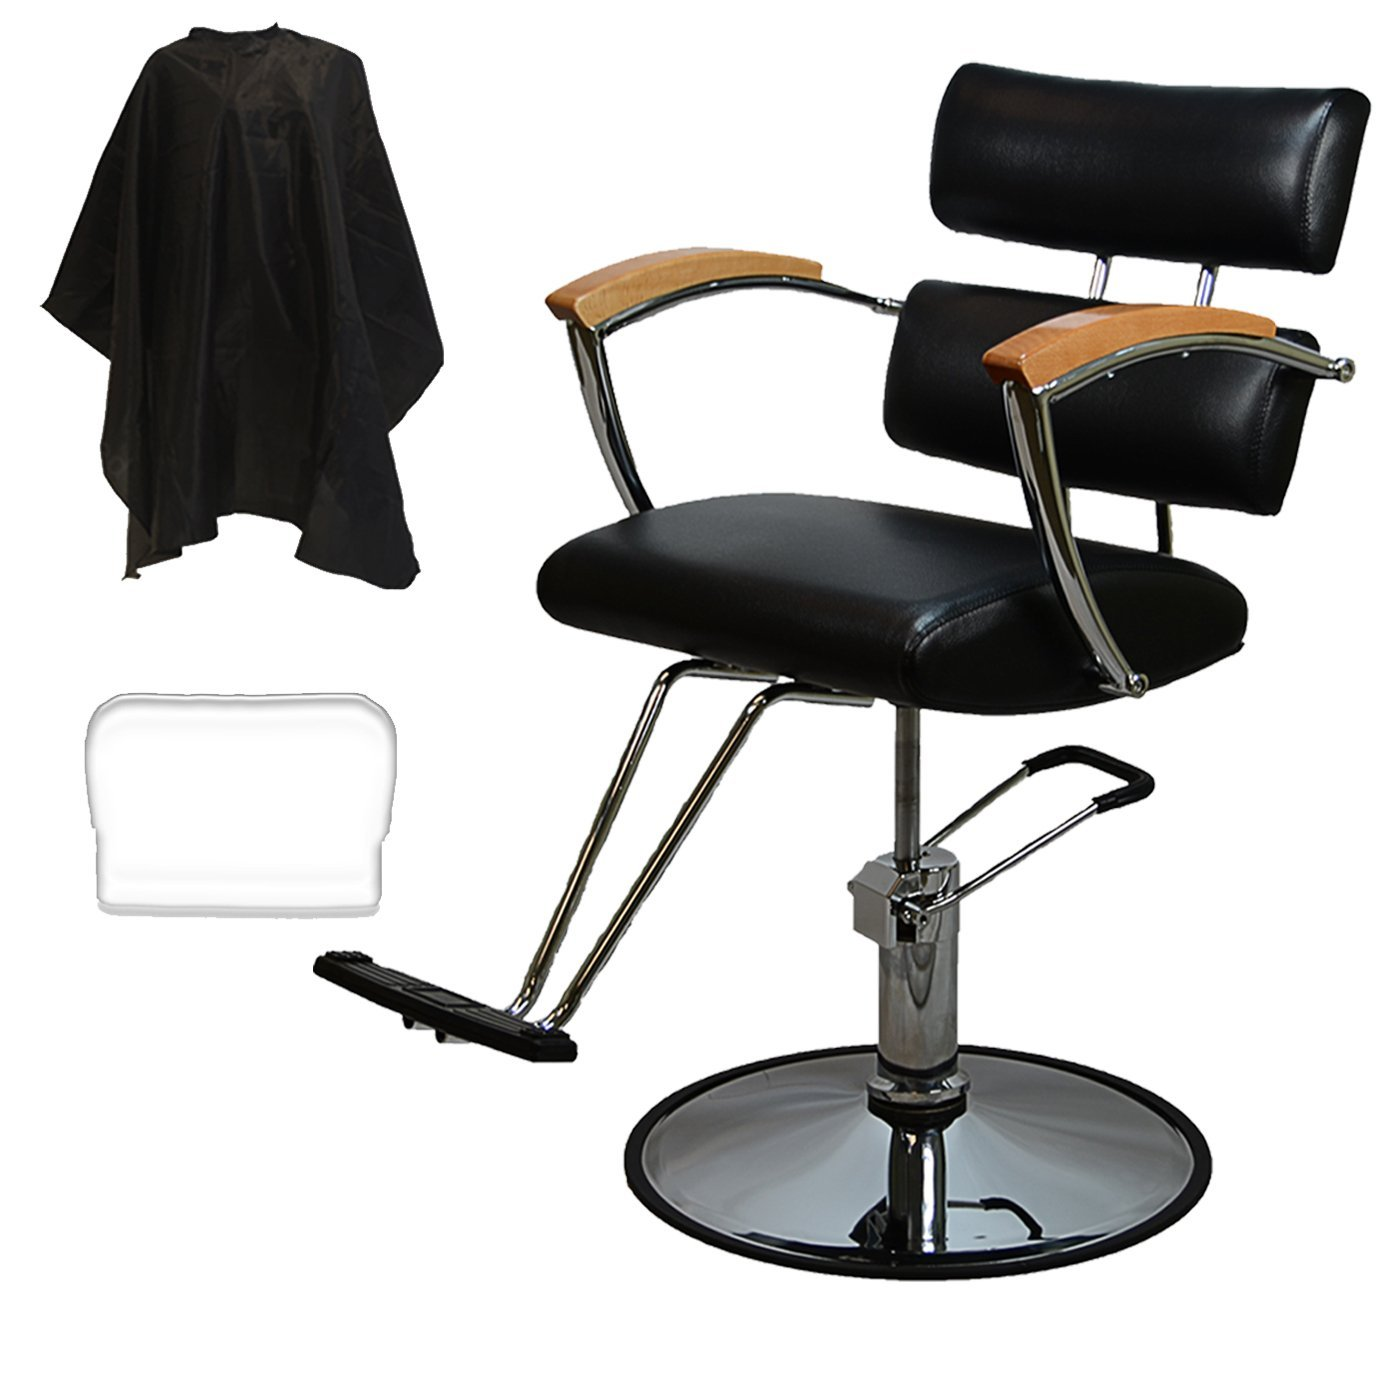 LCL Beauty Contemporary Black Hydraulic Barber Styling Chair with Oak Armrests PRO-6513-OAK